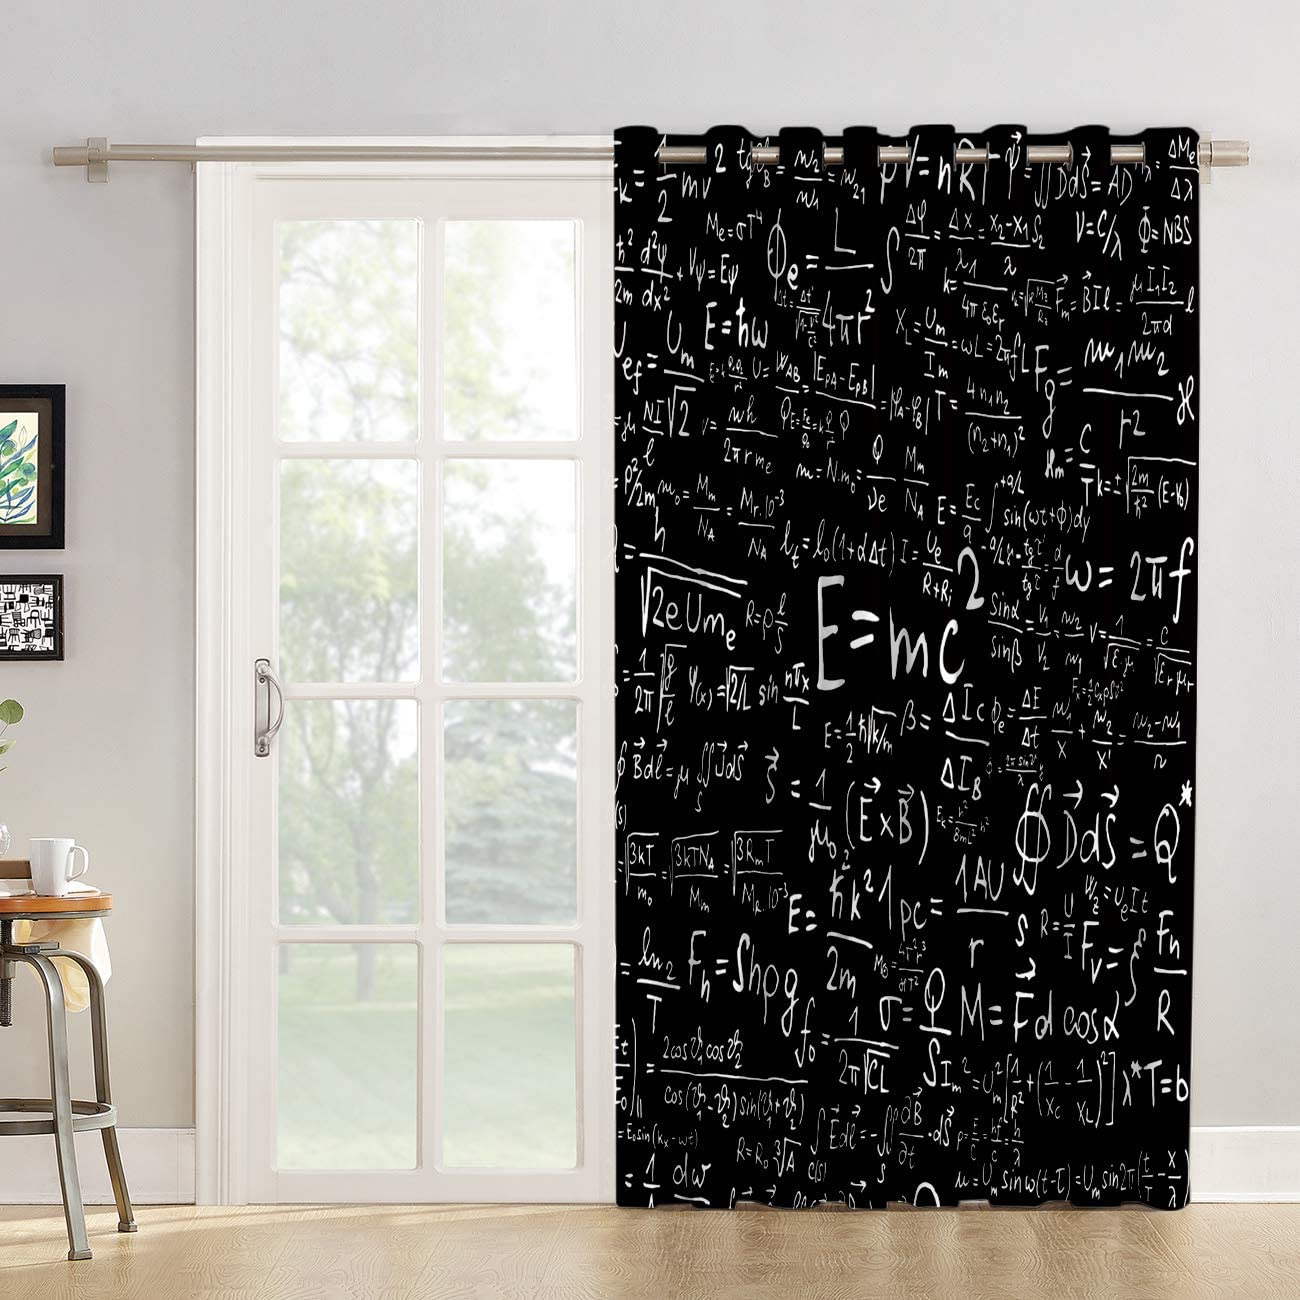 Futuregrace Blackout Curtains Mathematical Equation Black and White Livingroom Bedroom Darkening Window Draperies Curtains for Sliding Glass Door Home Office Decor 52 W by 96 L